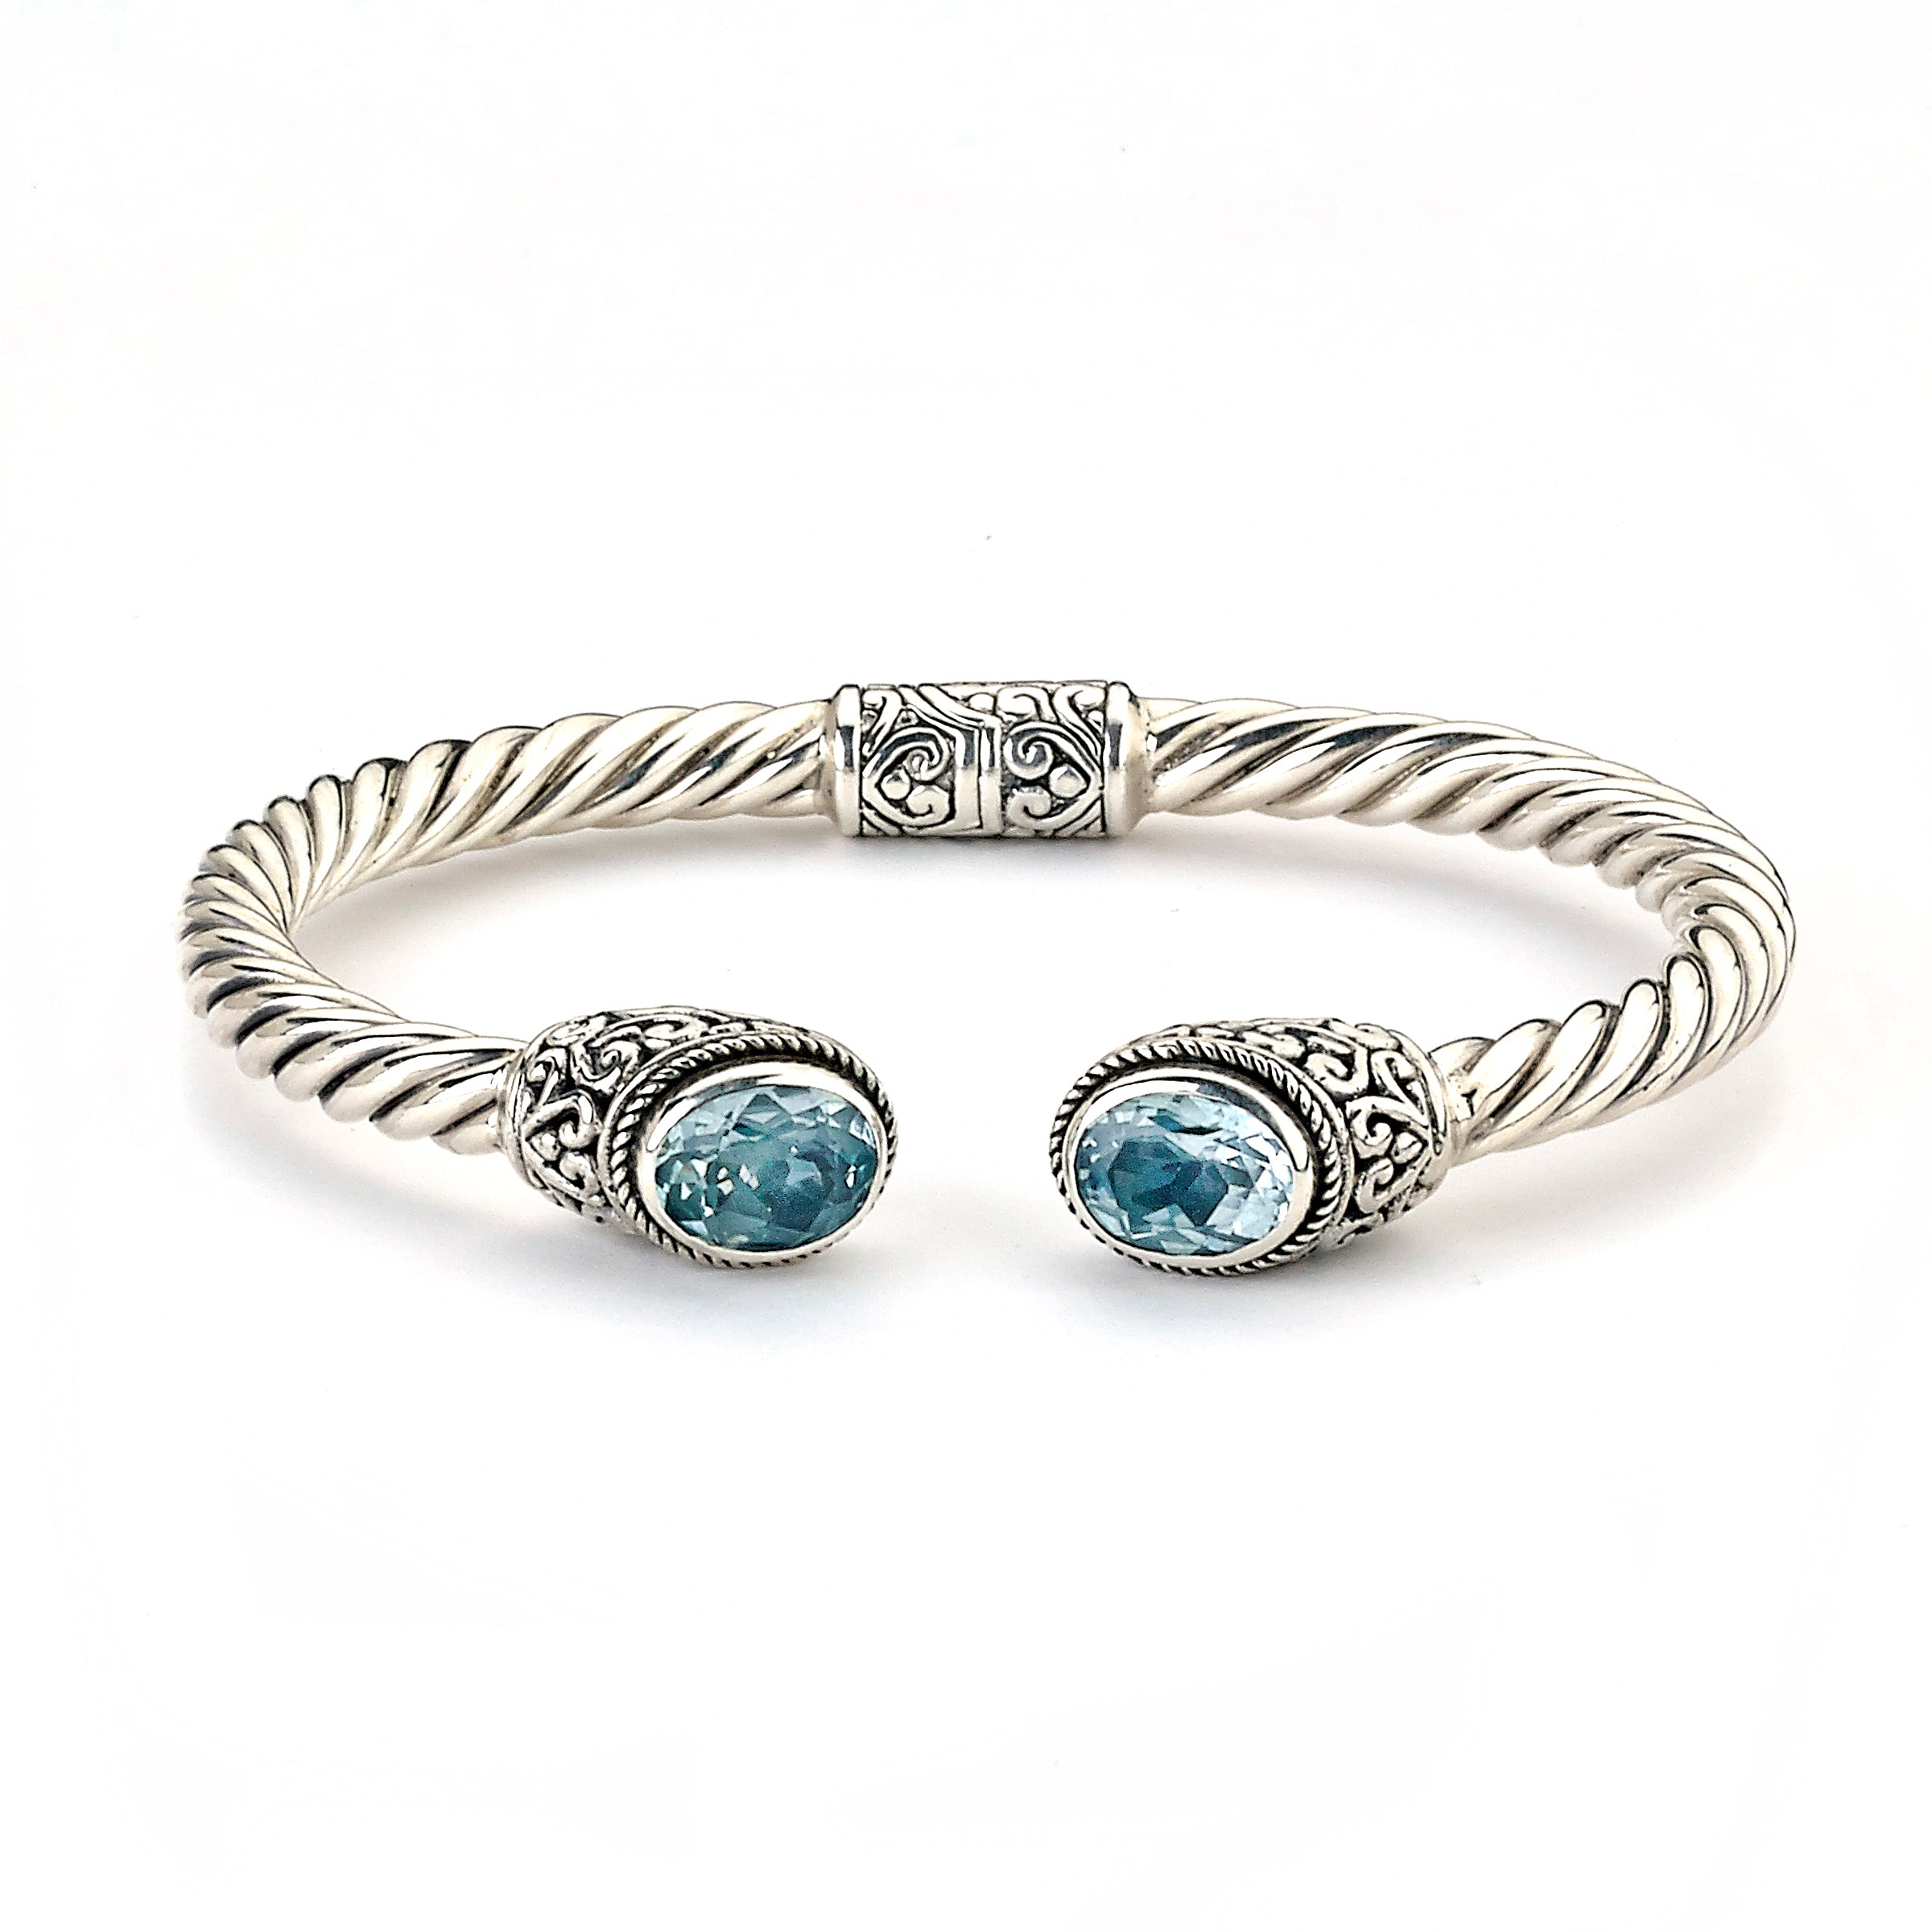 Hinged Cuff with Blue Topaz Ends, Sterling Silver